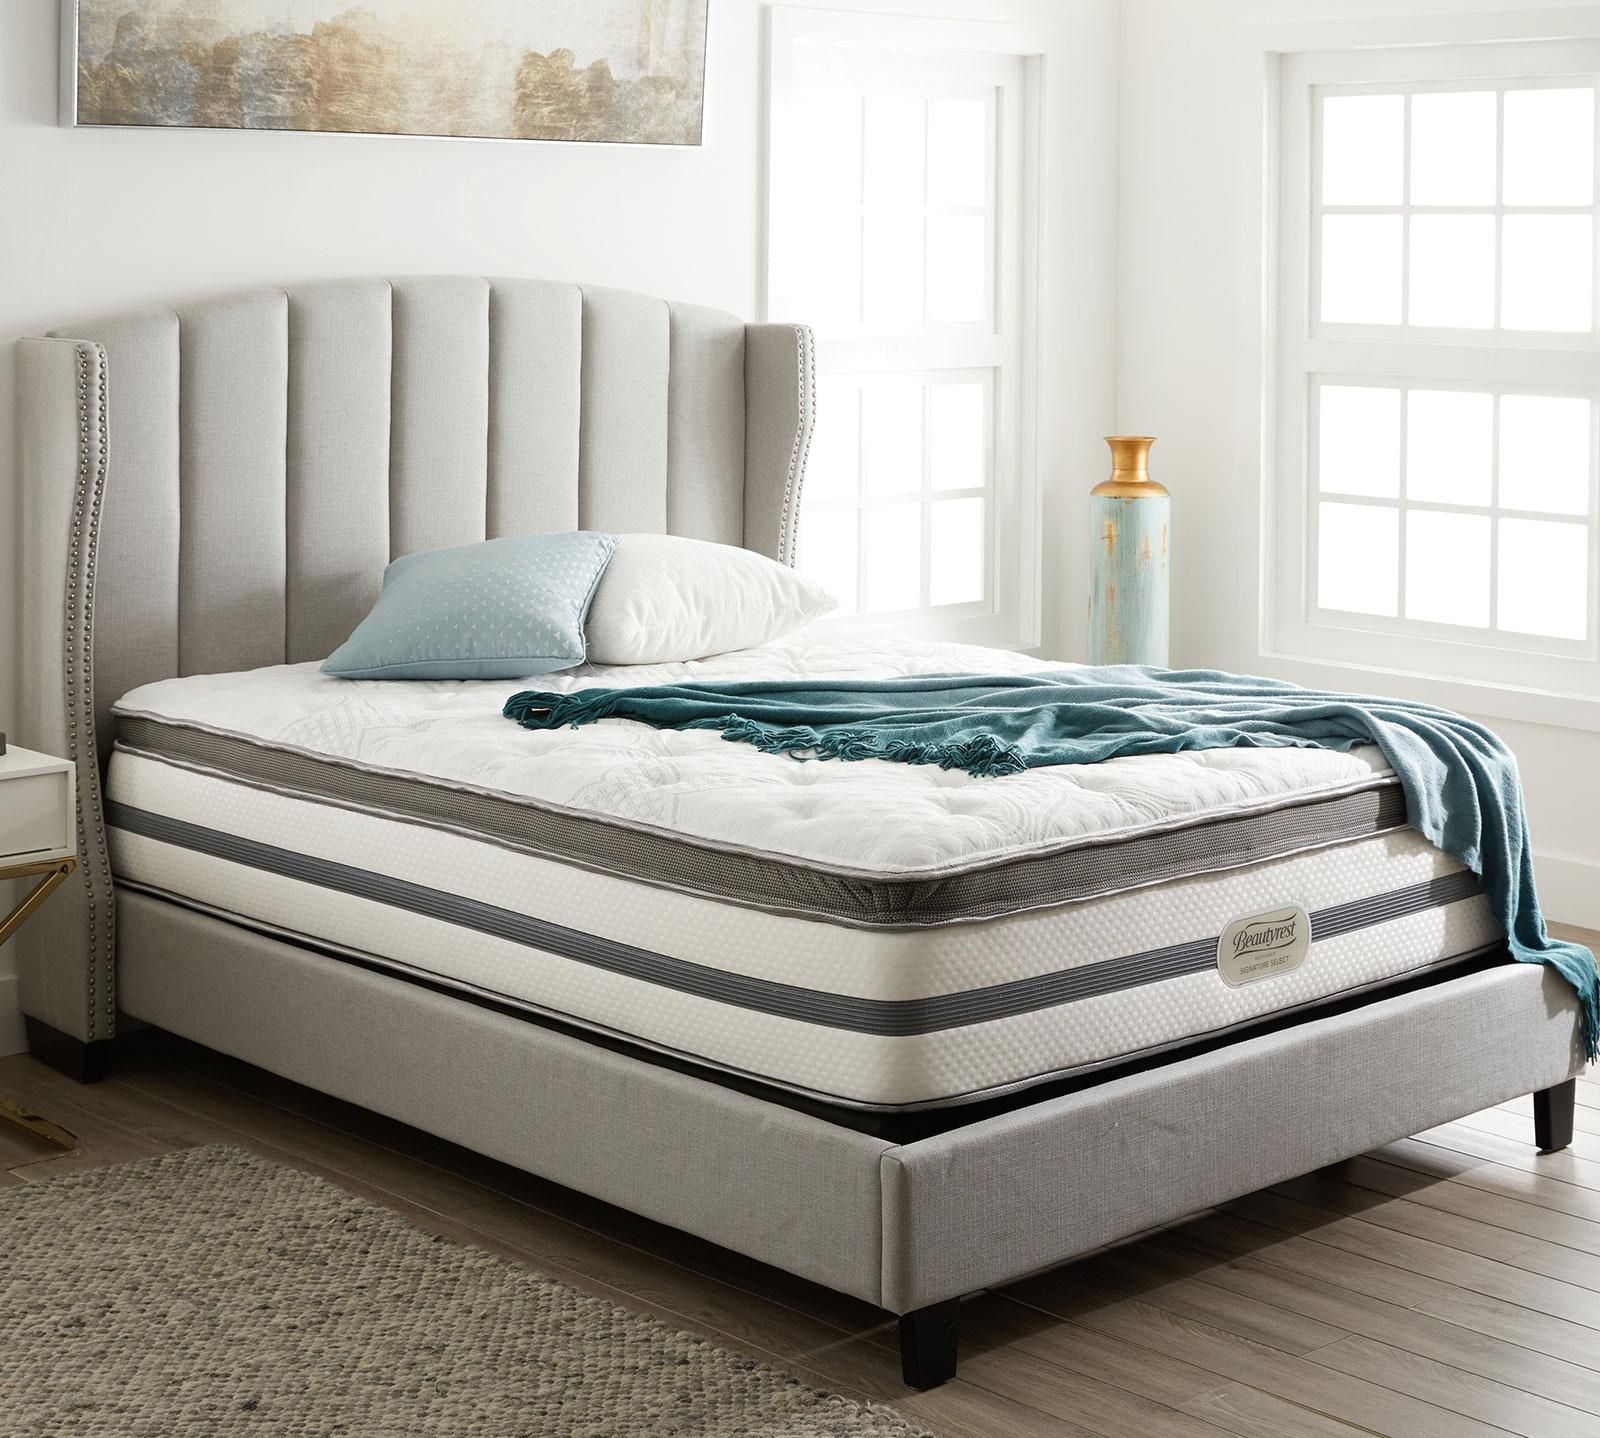 Shop For Your Simmons Beautyrest Recharge Bay Spring 14 Luxury Firm Pillow Top Mattress At Mattress Firm Th Bed Frame Sets Bed Frame Mattress Best Bed Sheets